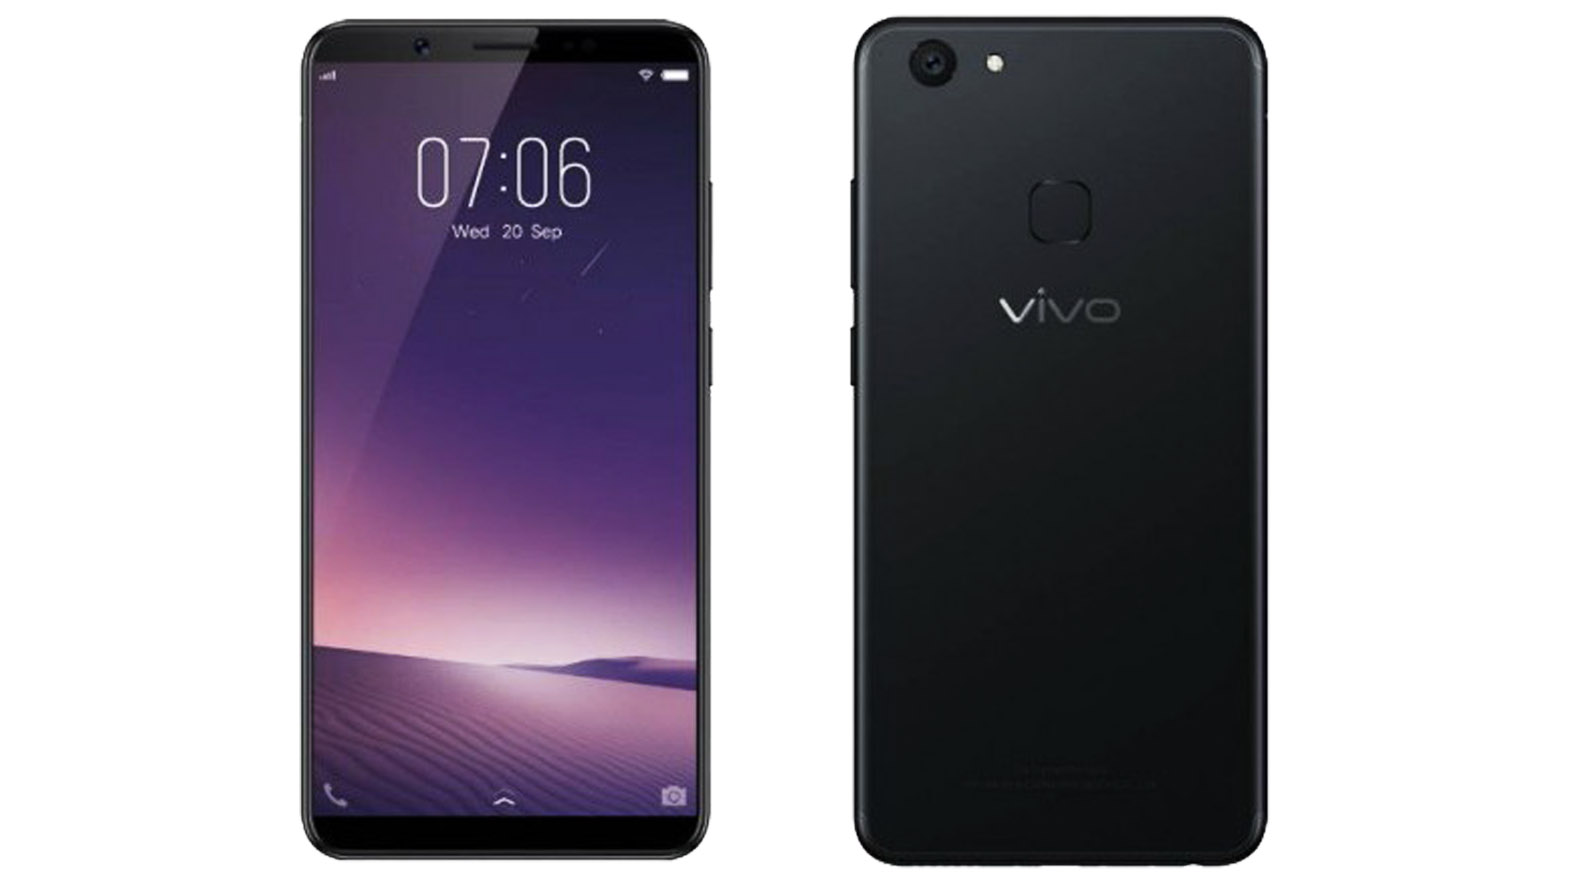 Price of Vivo smartphones in Nepal